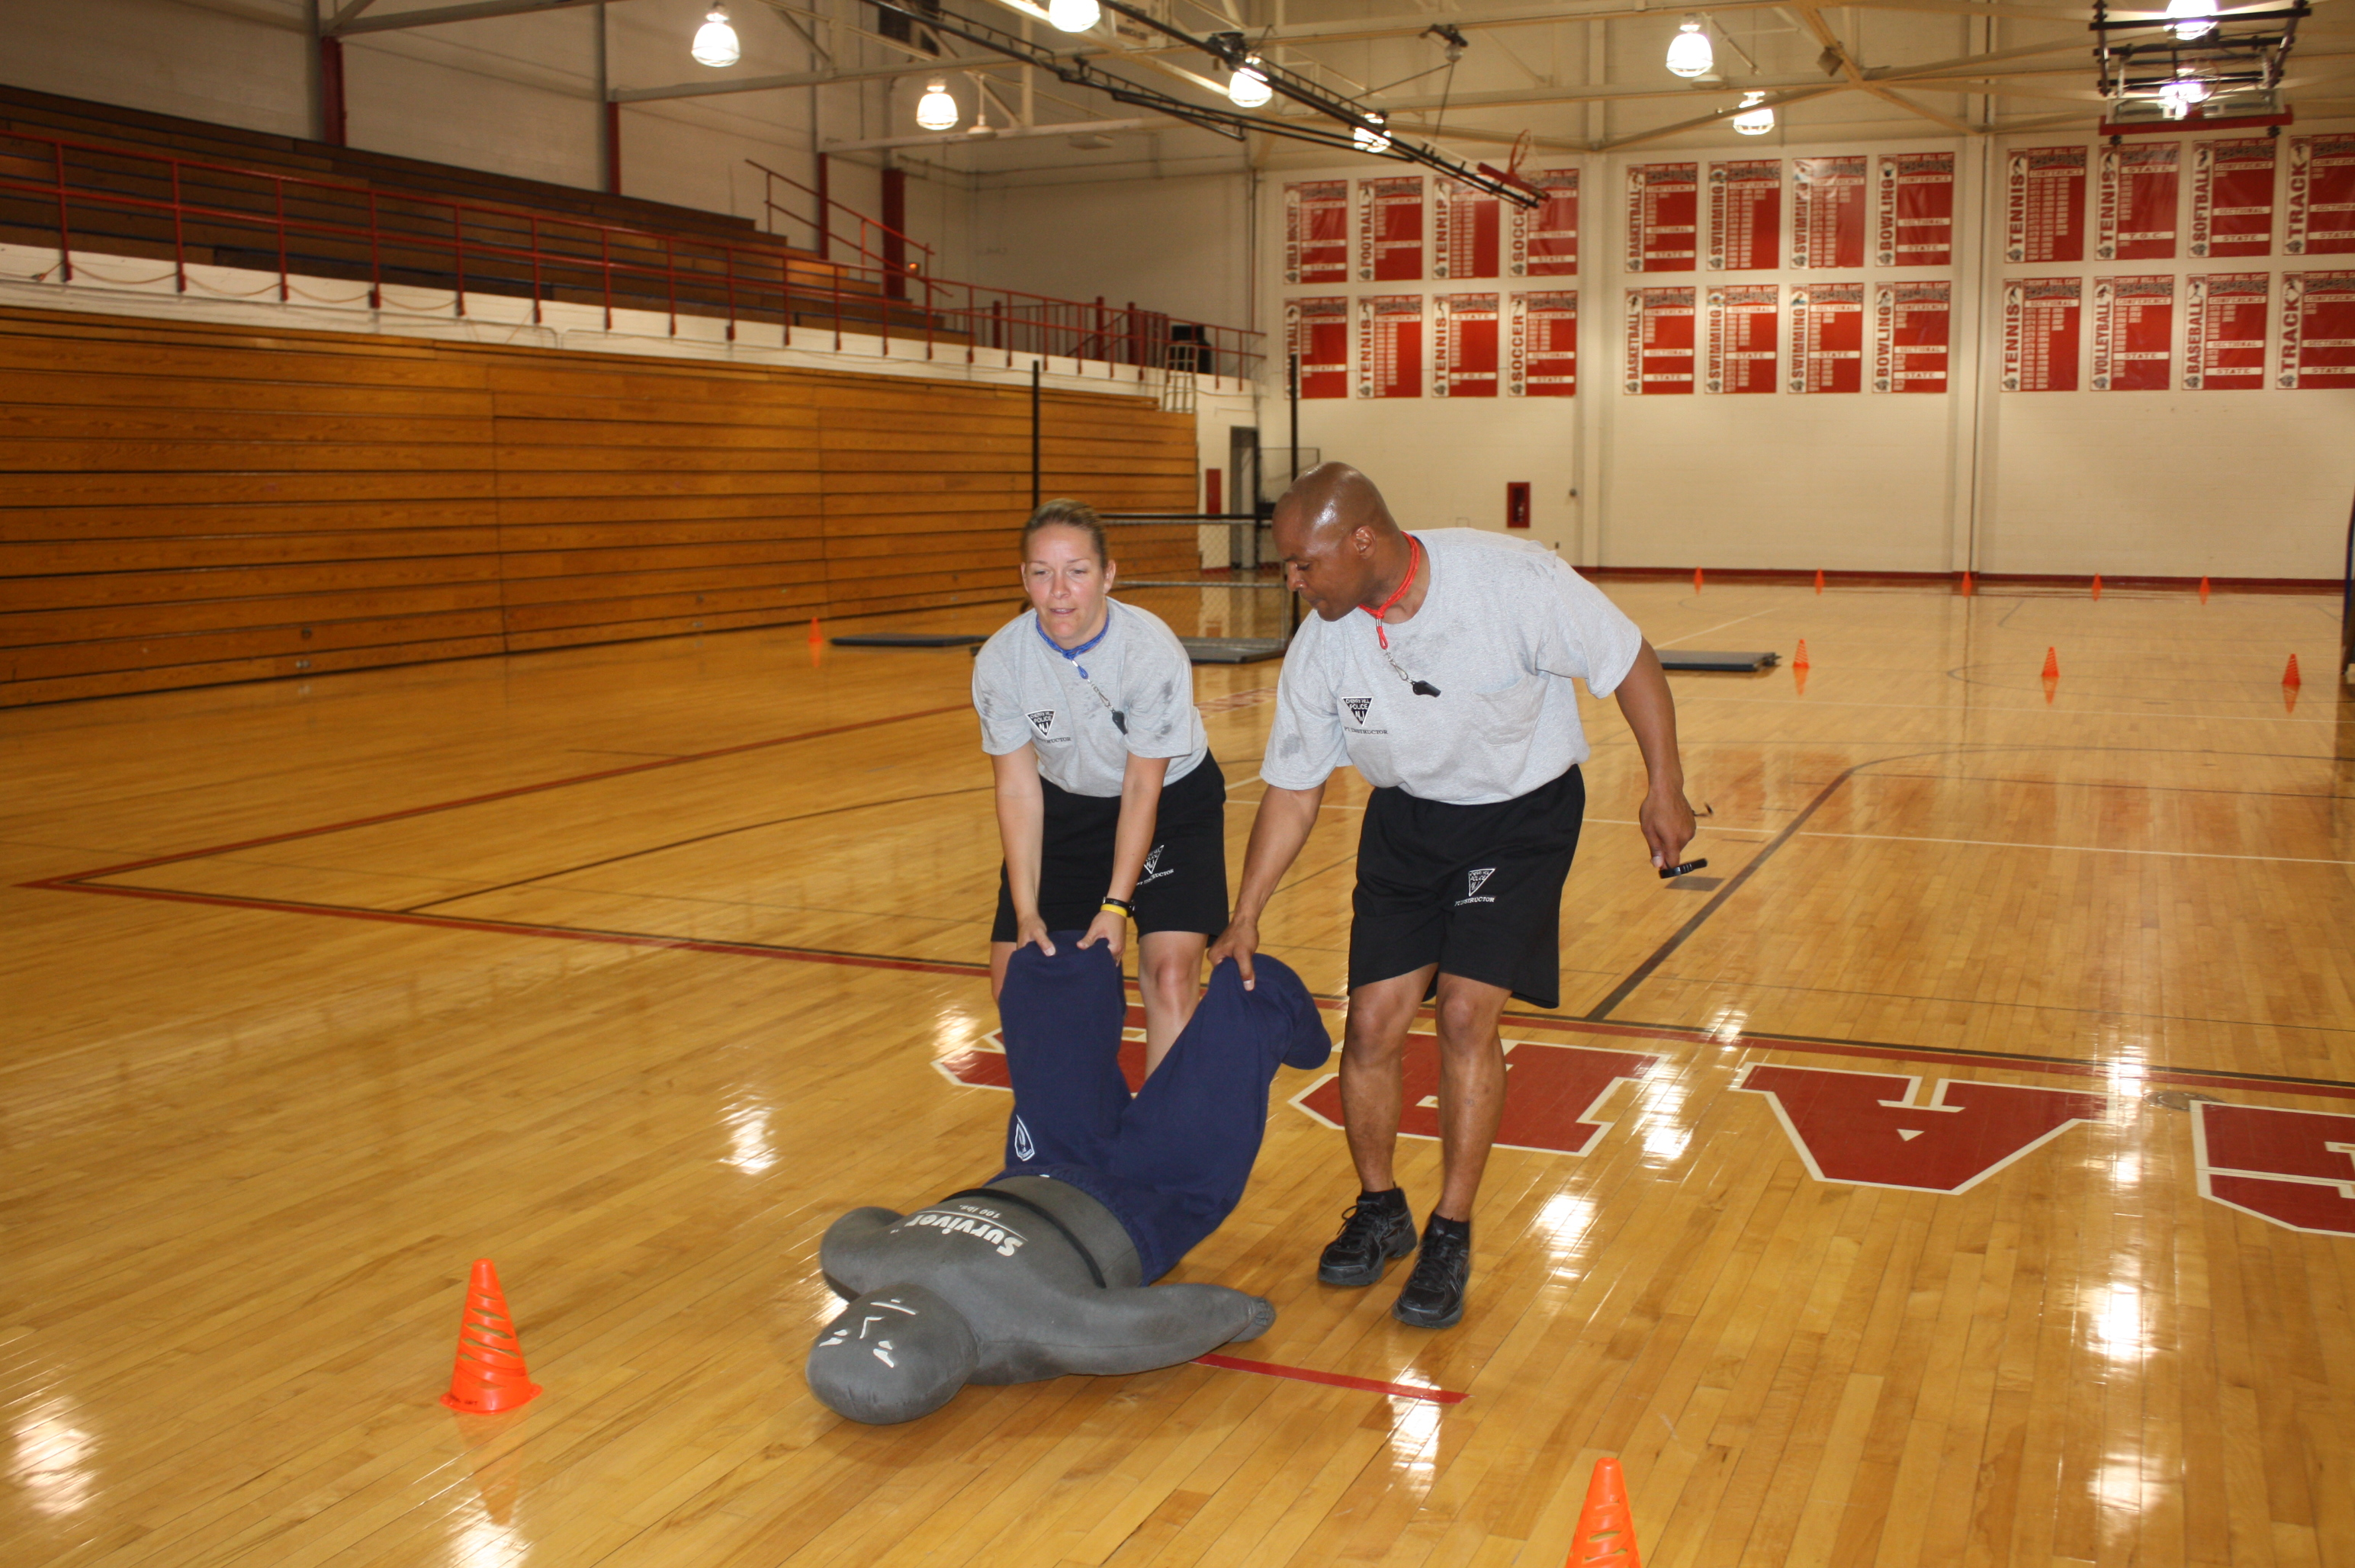 CHPD physical ability test 2